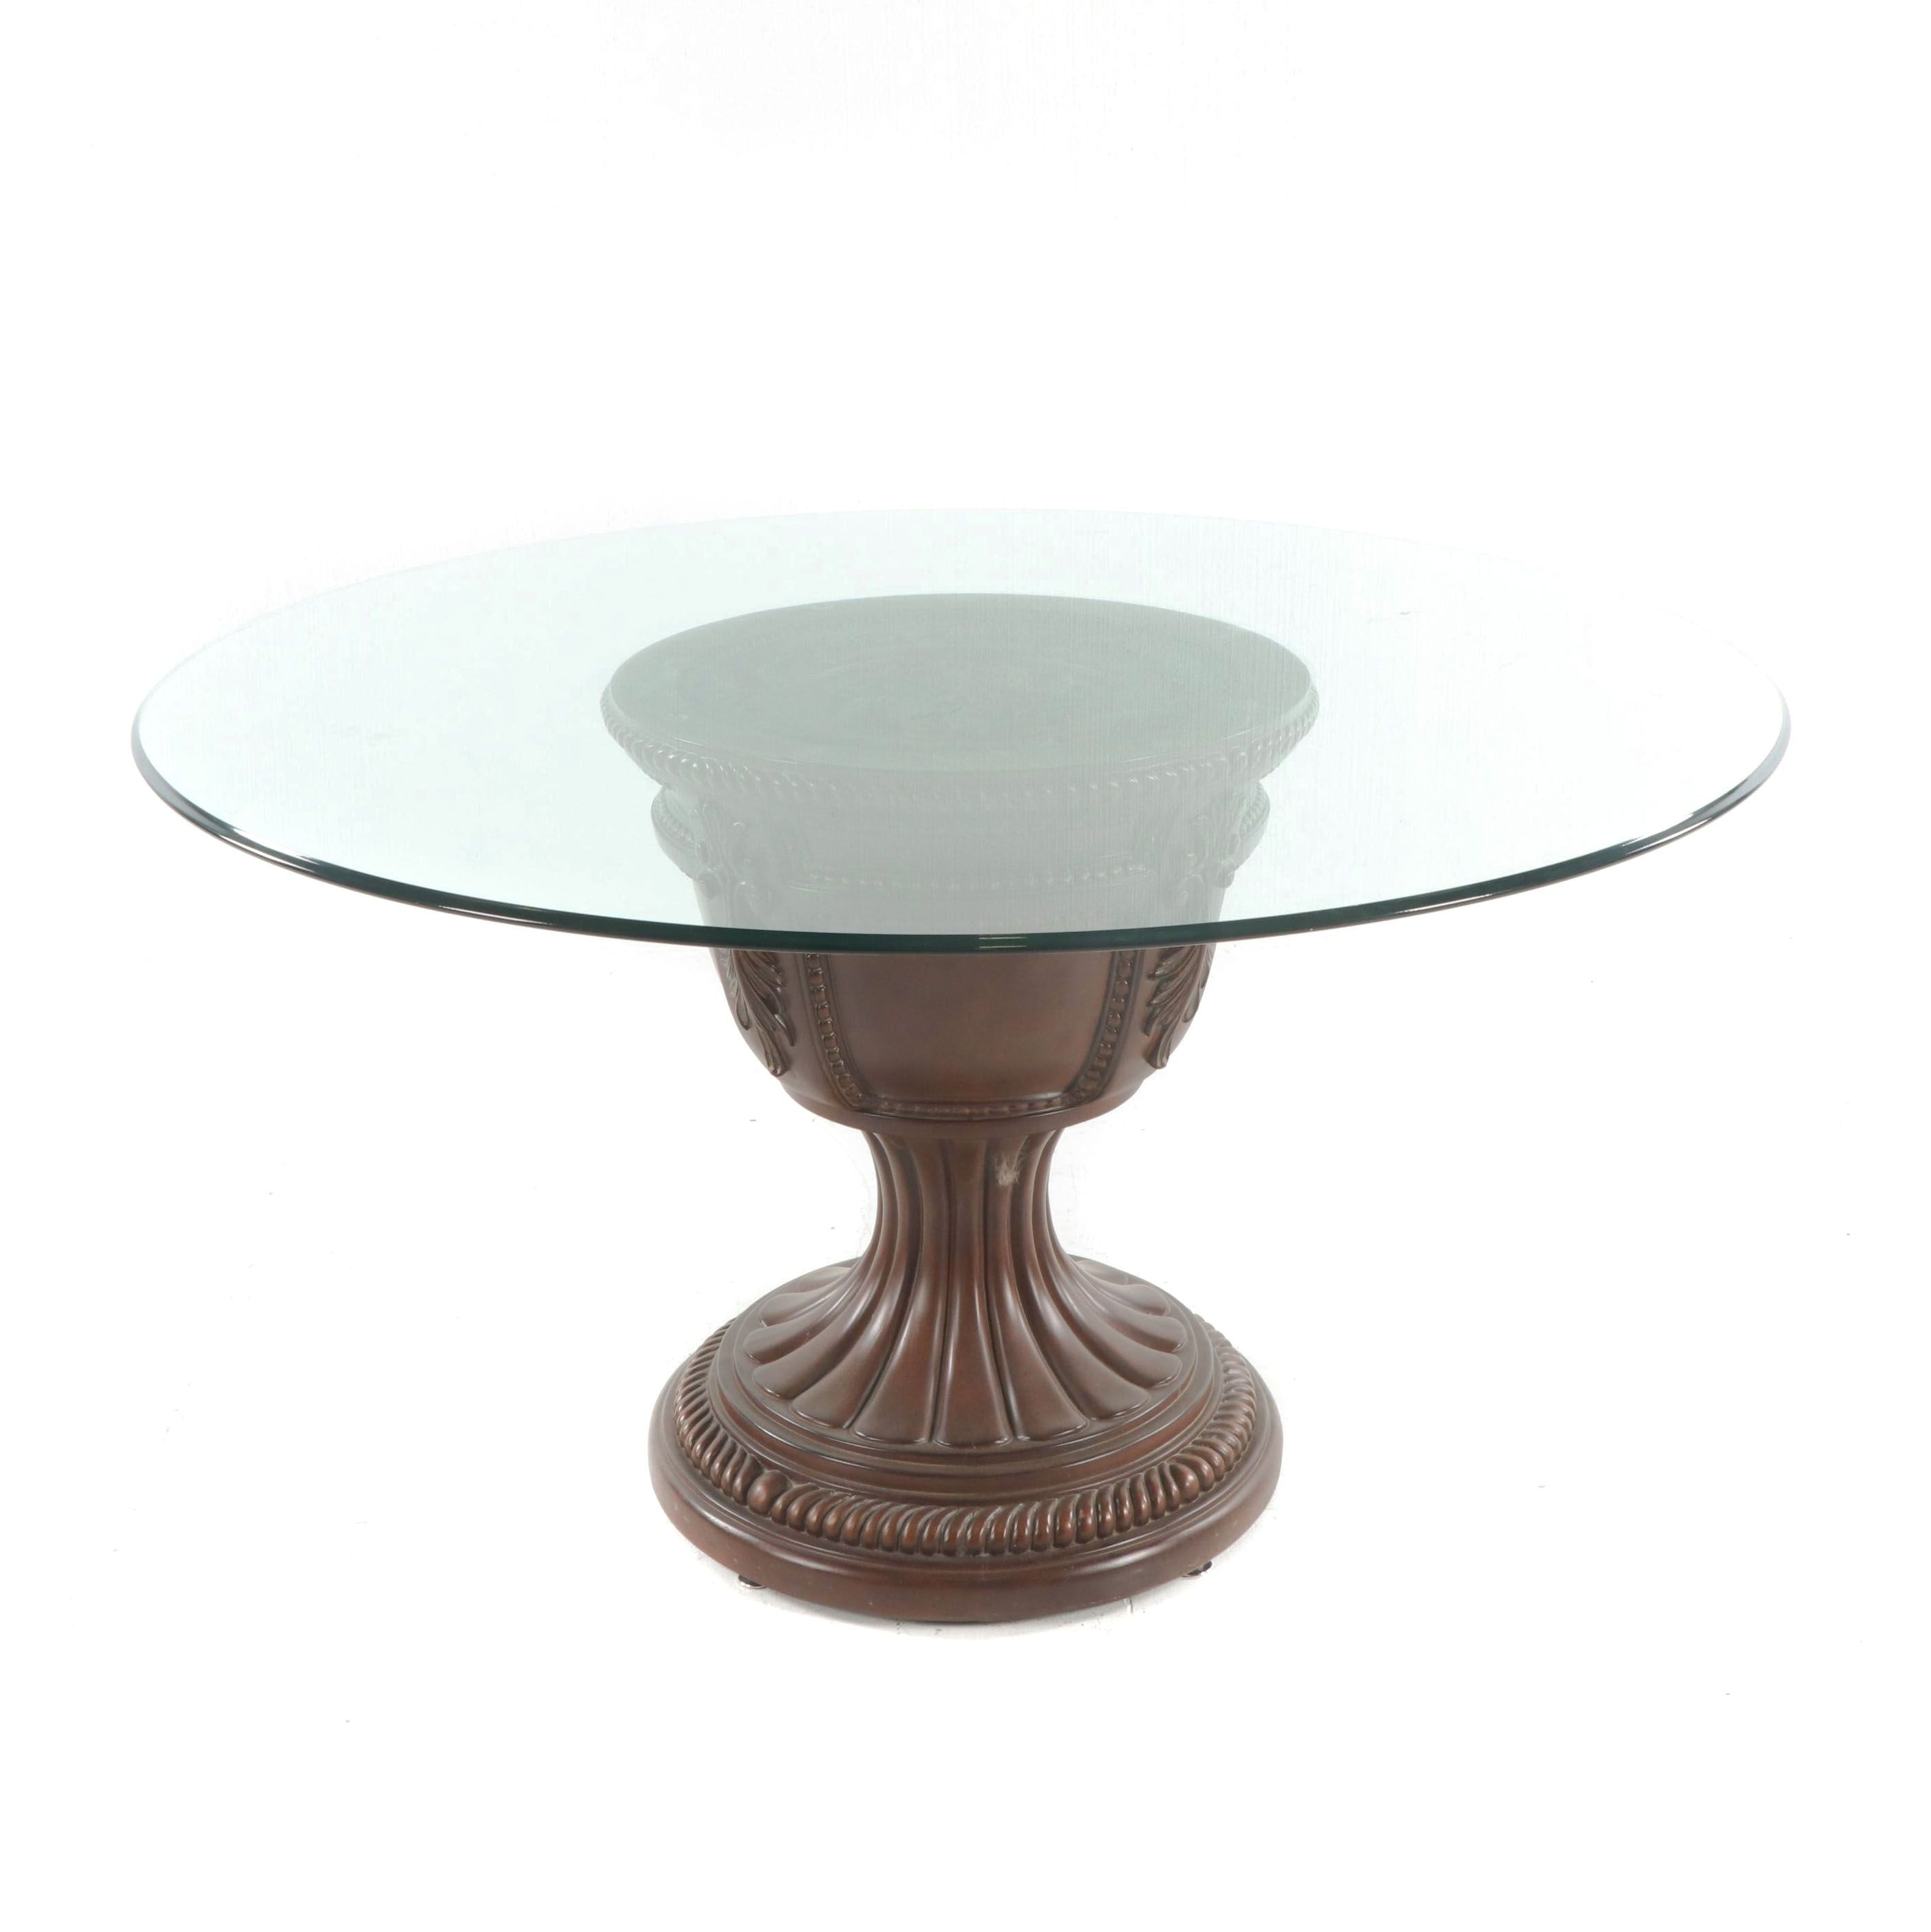 Neoclassical Style Urn Form Base Table with Glass Top, 21st Century